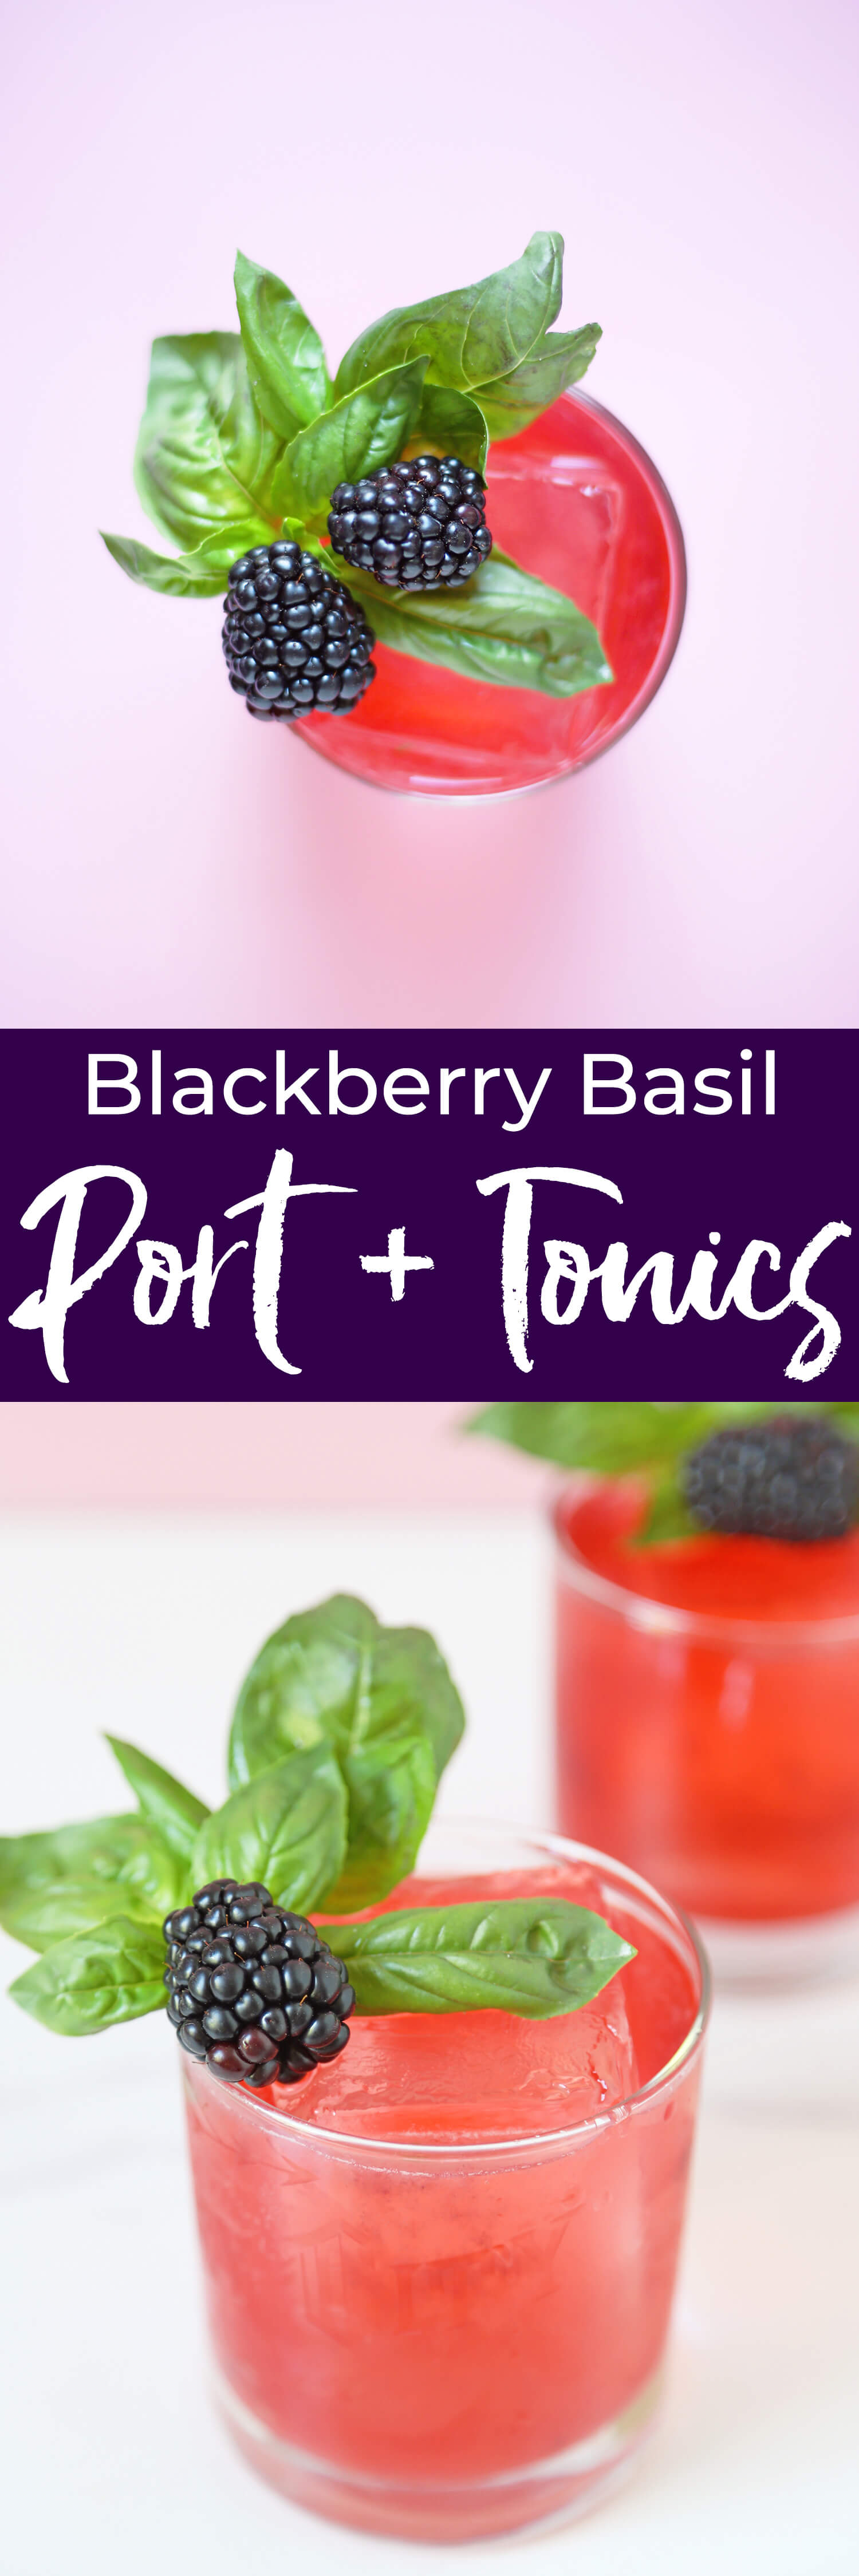 Blackberry Basil White Port and Tonic